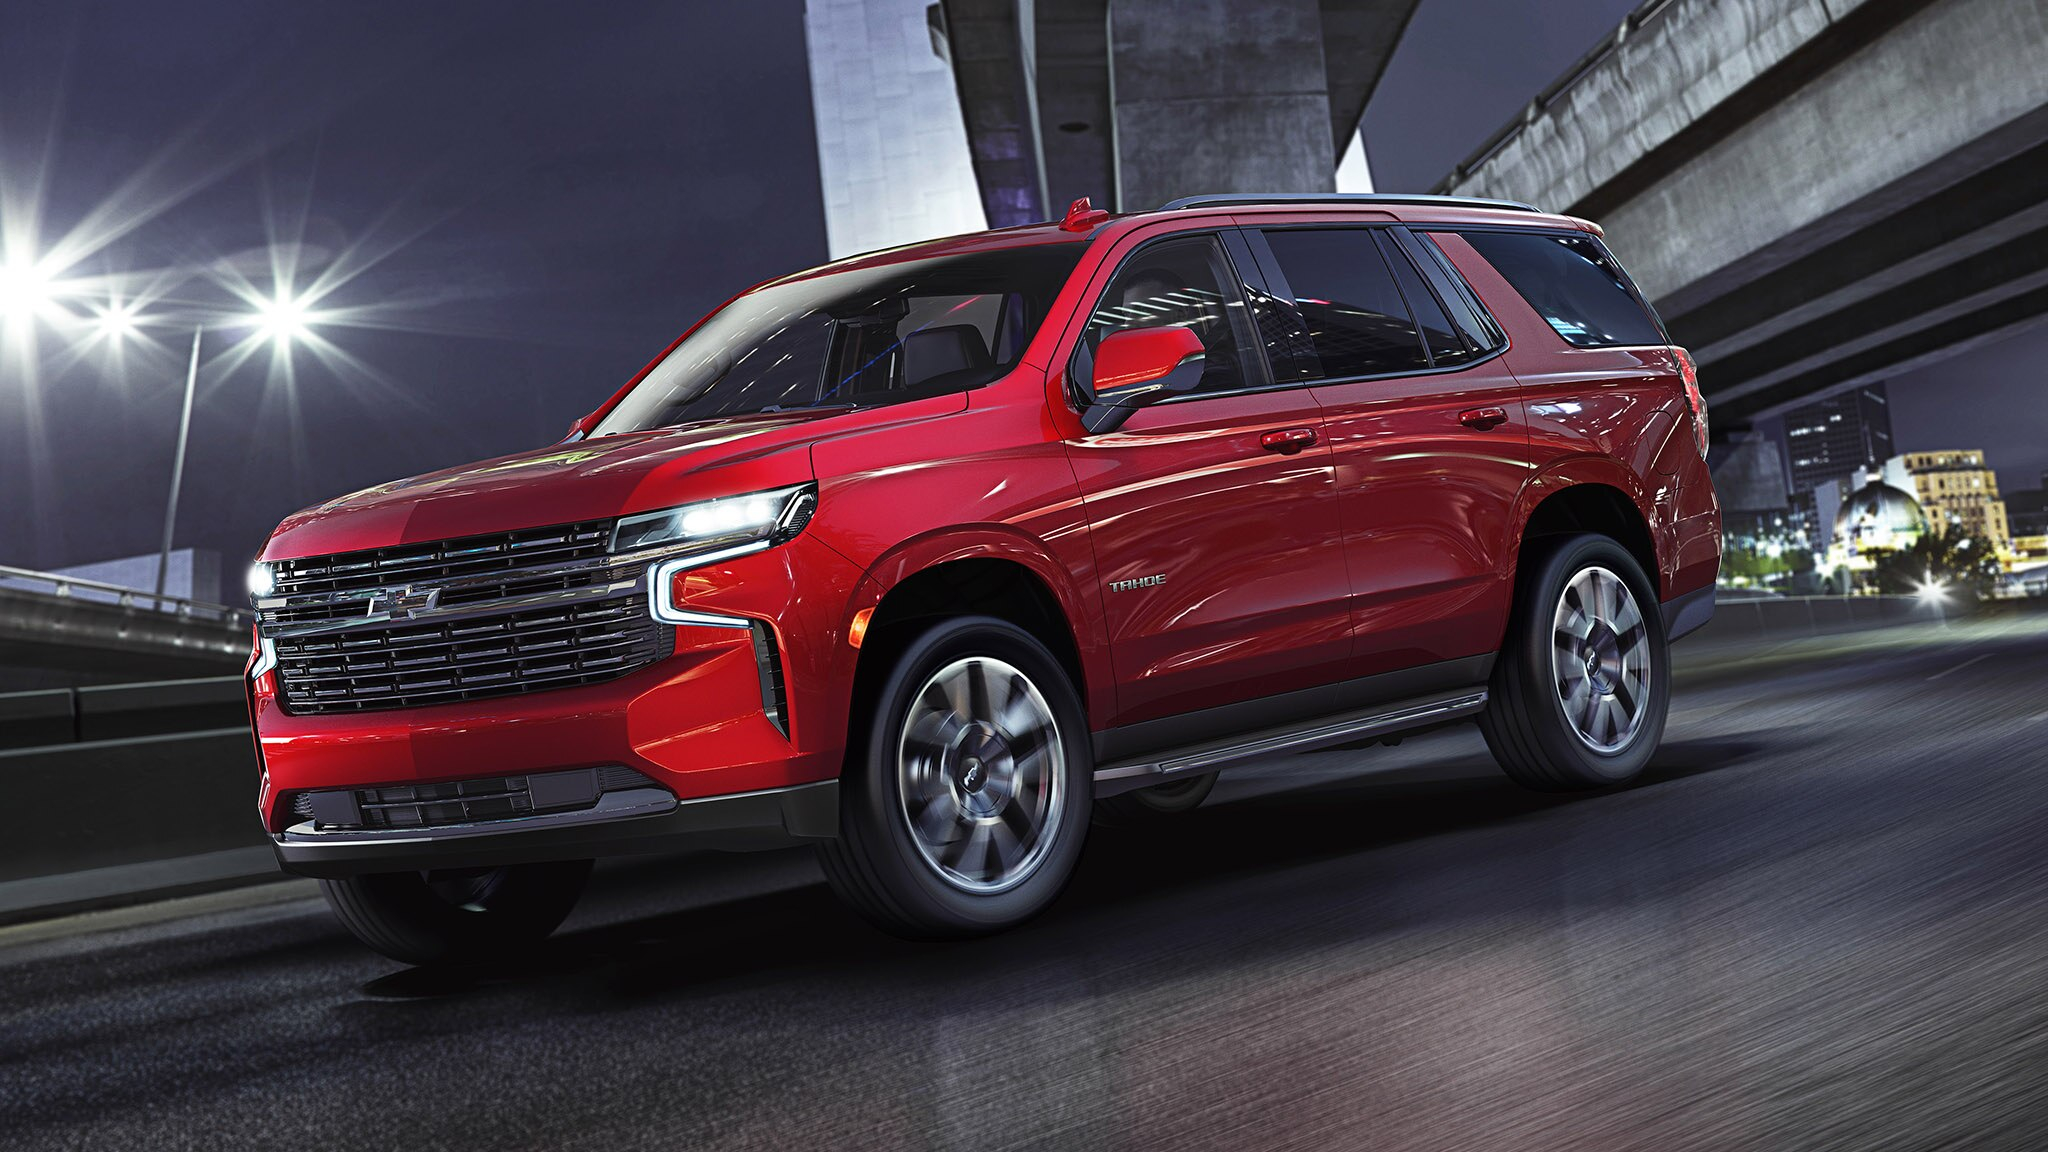 All-New, Techier 2021 Chevrolet Tahoe Barely Costs Any More 2021 Chevy Corvette Trim Levels, Mpg, Msrp